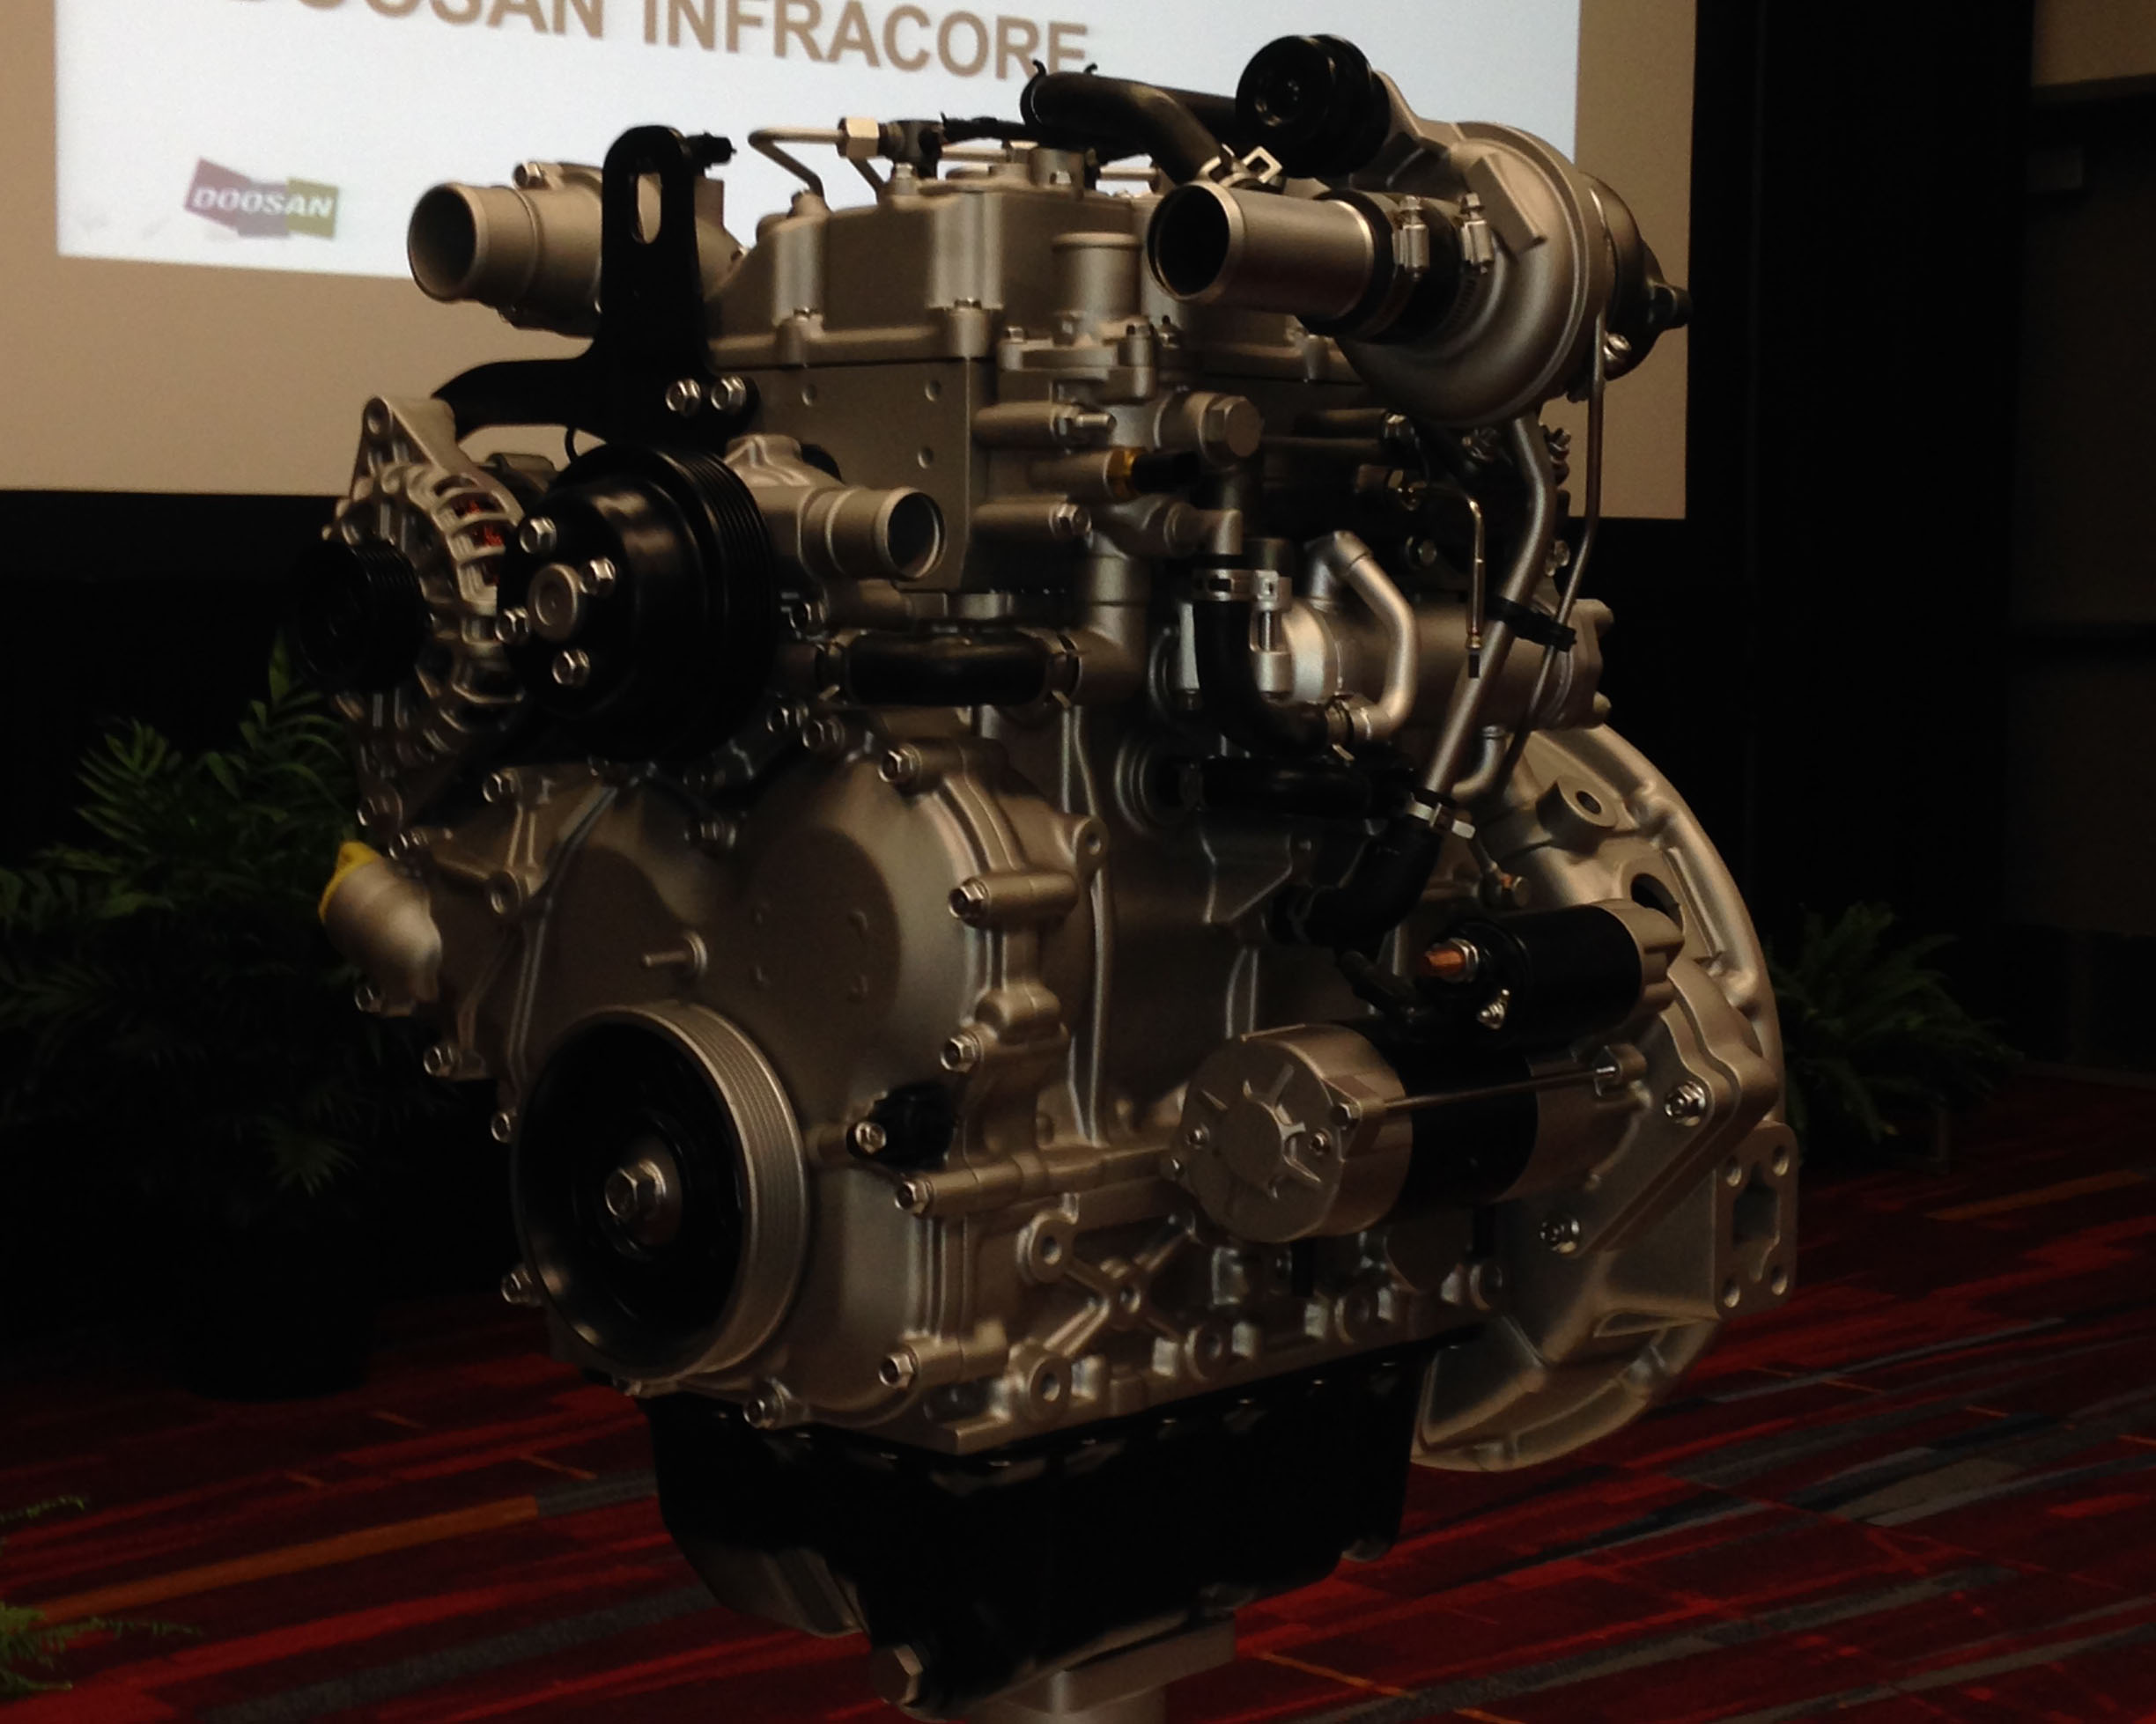 Doosan launches Tier 4 Final non-DPF compact diesel engines